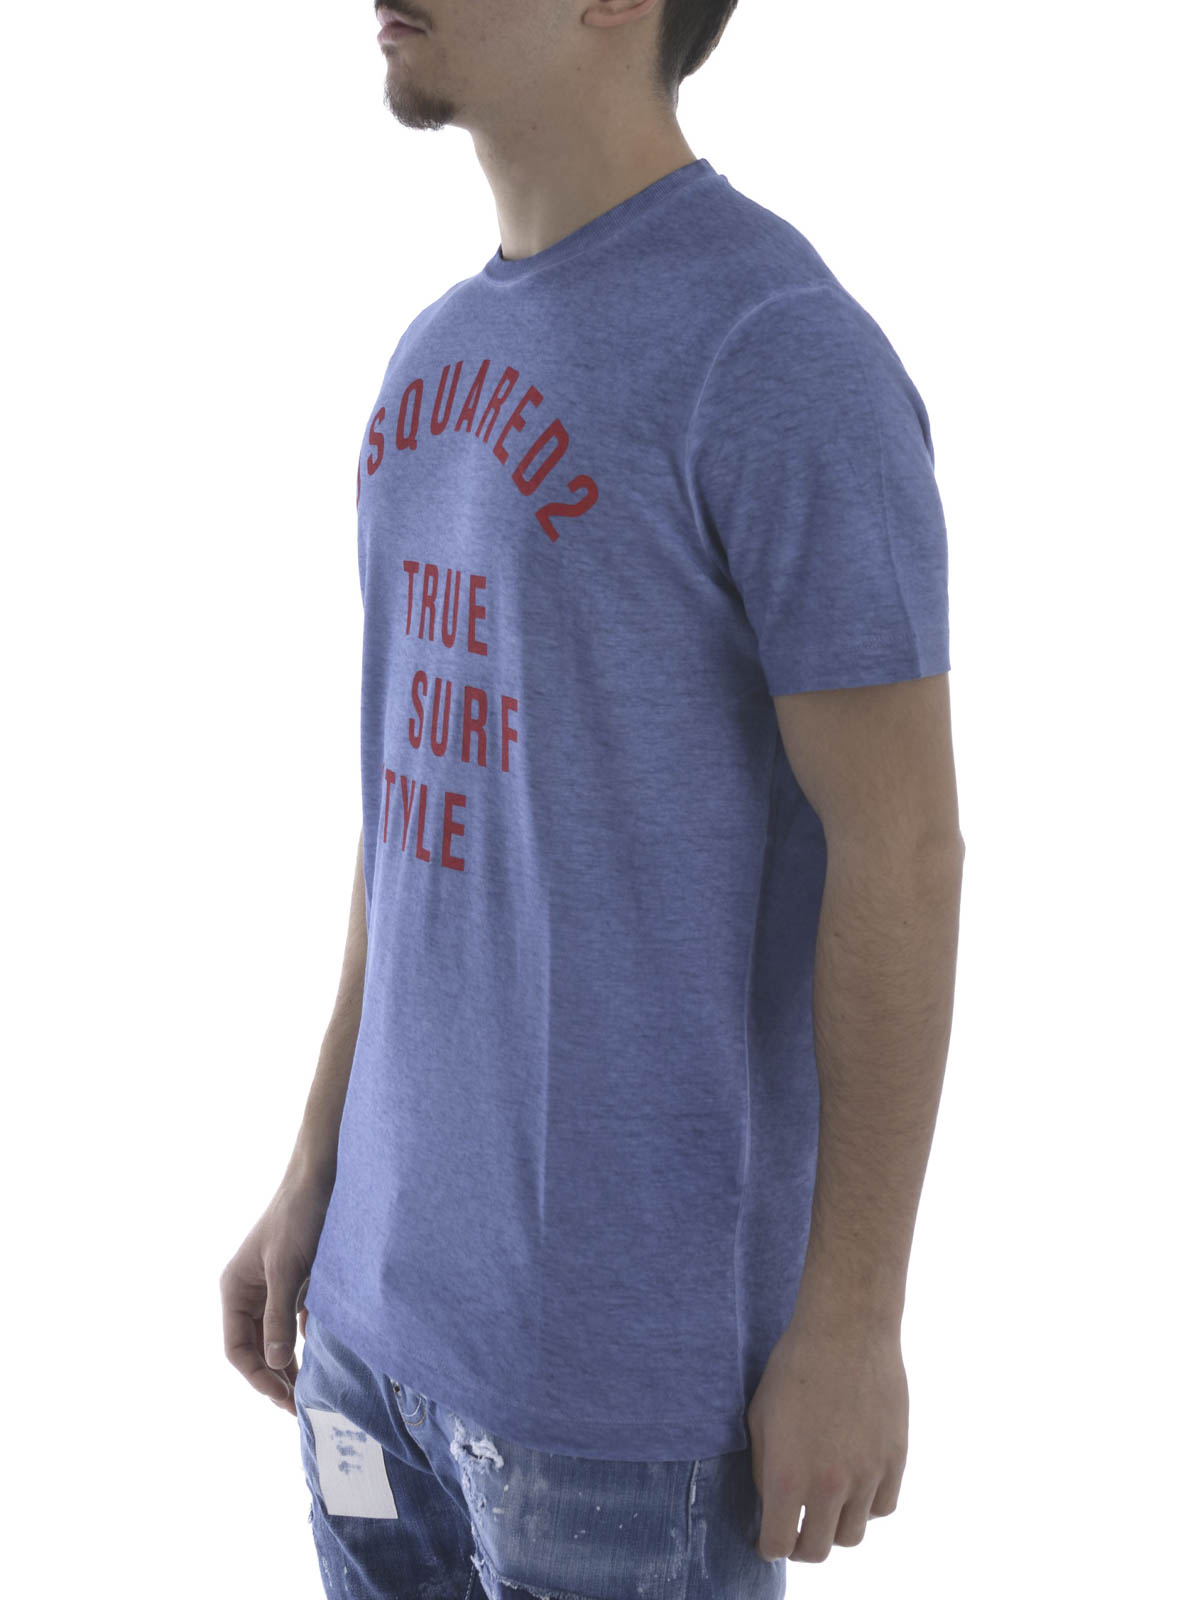 Faded look t shirt by dsquared2 t shirts ikrix for Faded color t shirts